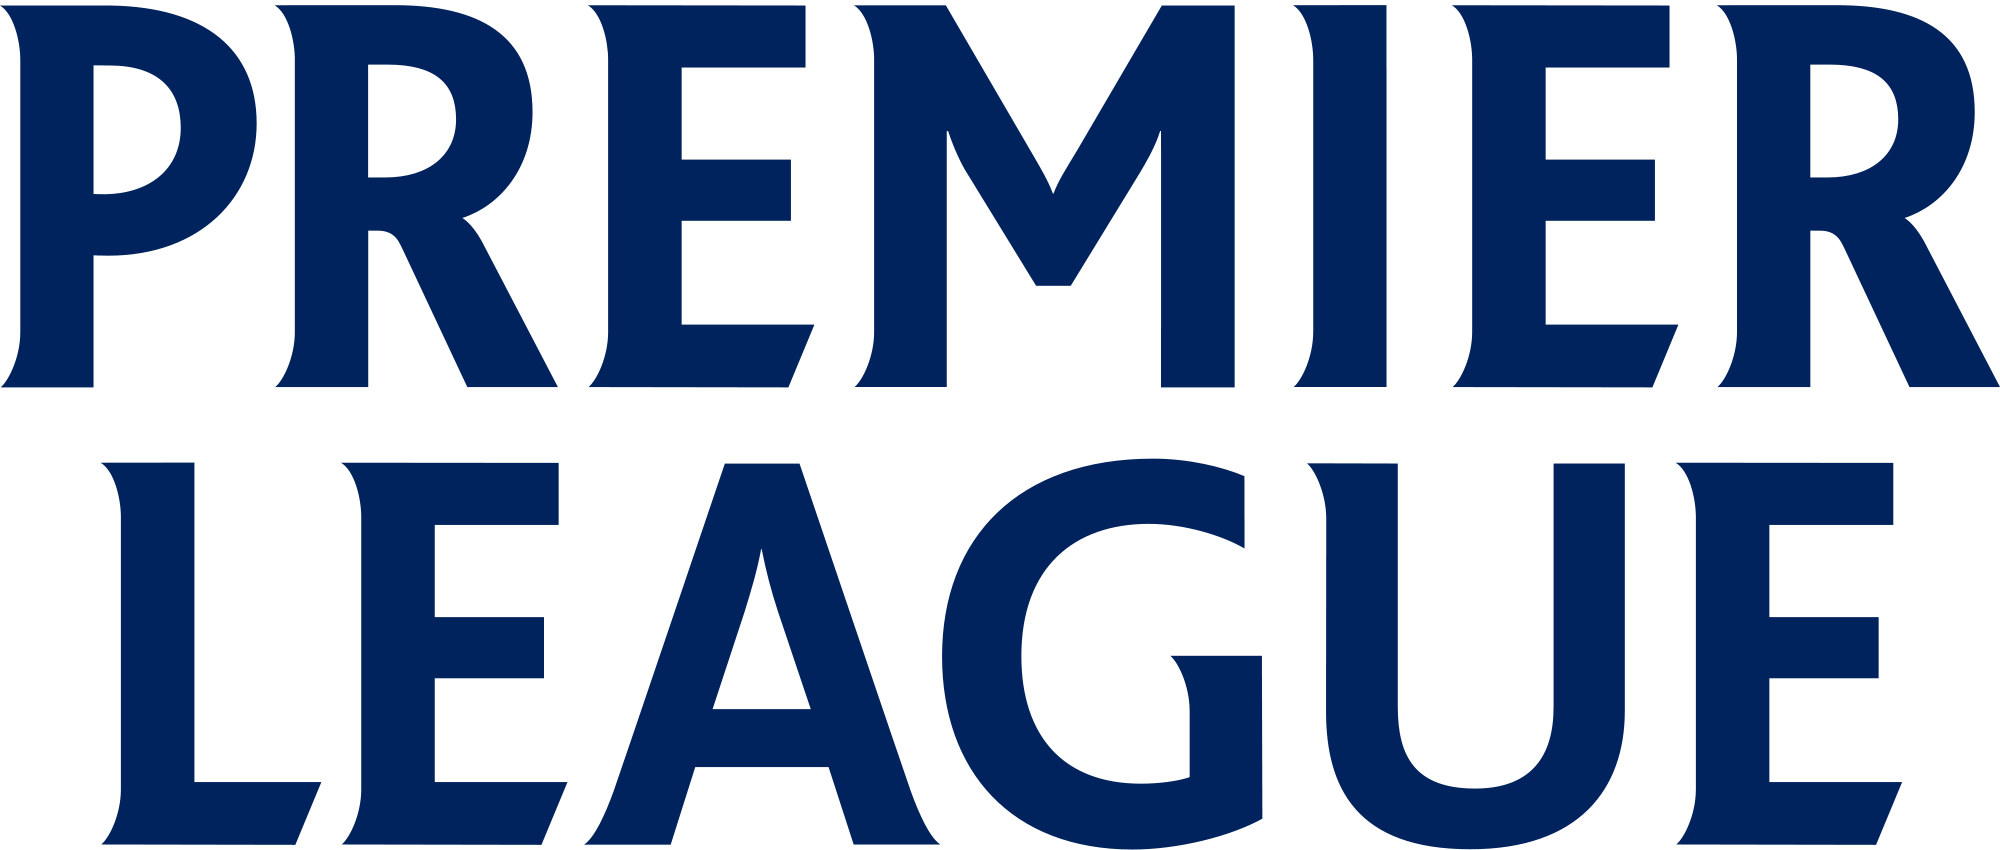 UK_Premier_League_logo